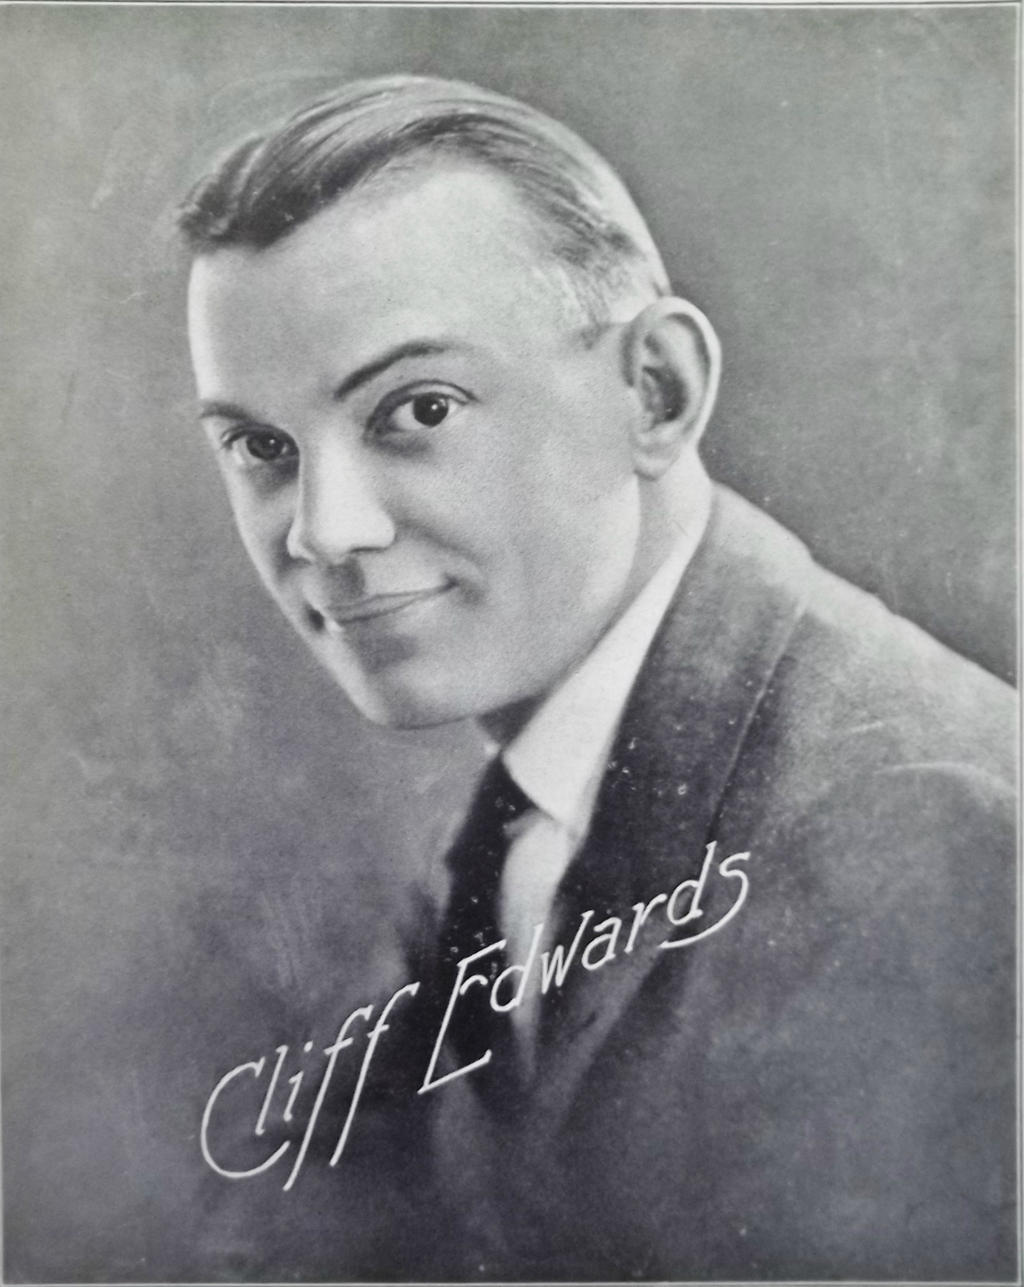 Cliff Edwards by PRR8157